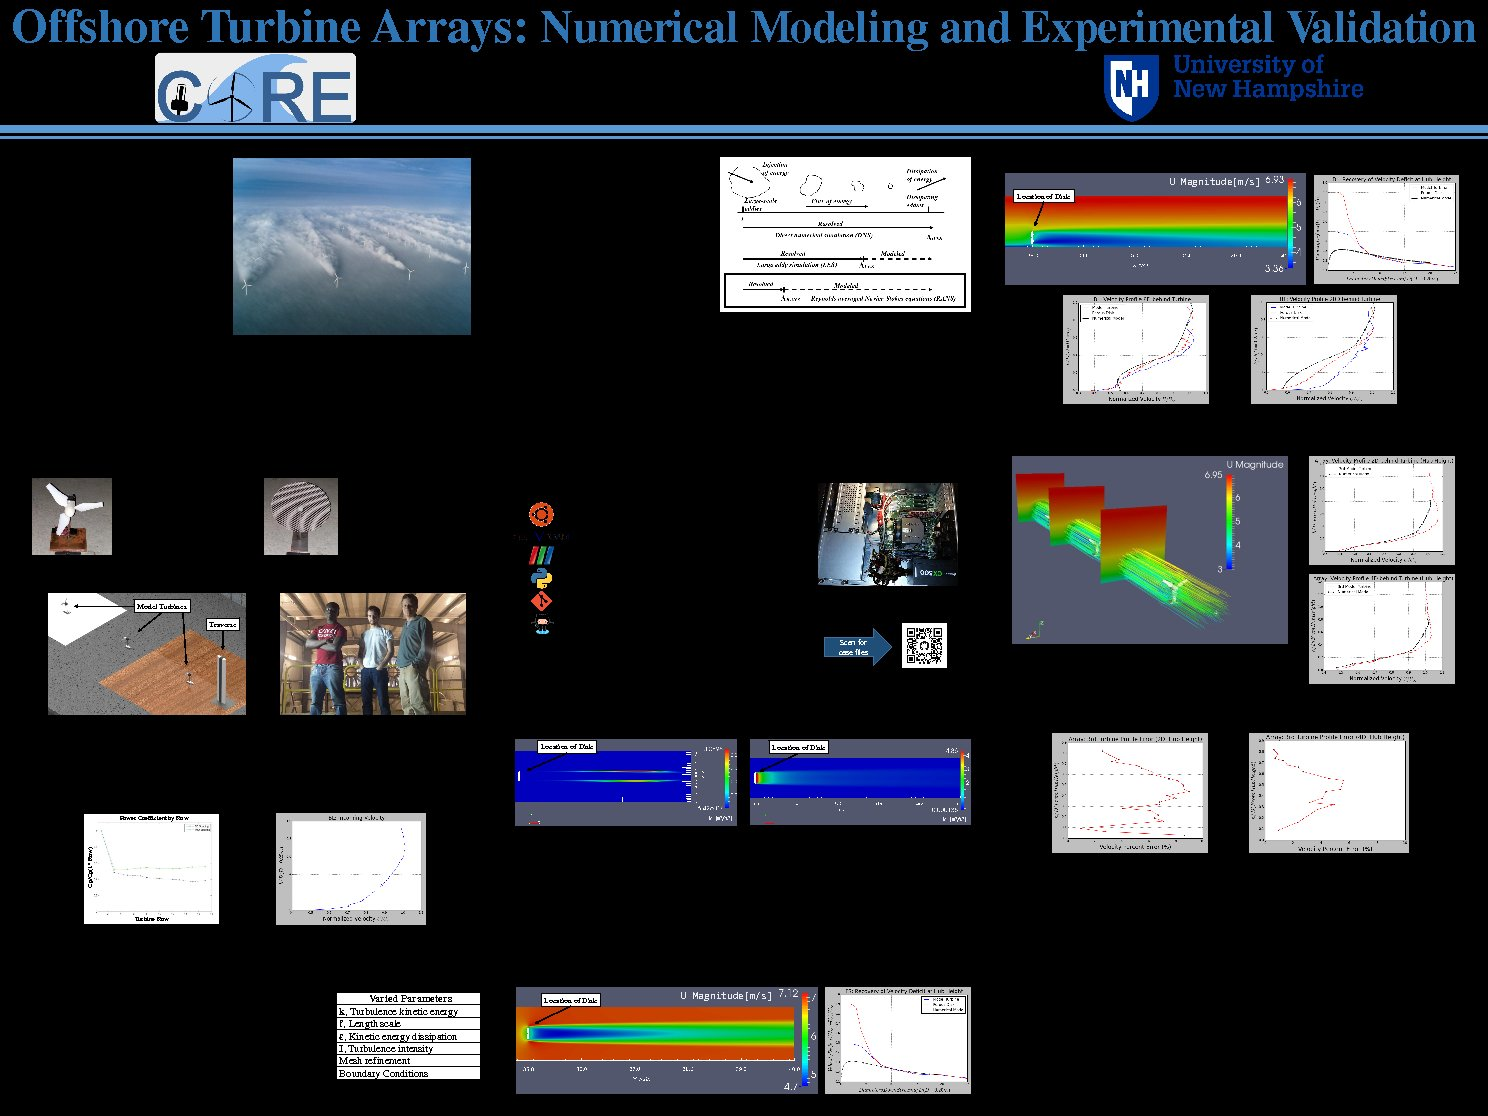 Offshore Turbine Arrays: Numerical Modeling And Experimental Validation by whb7